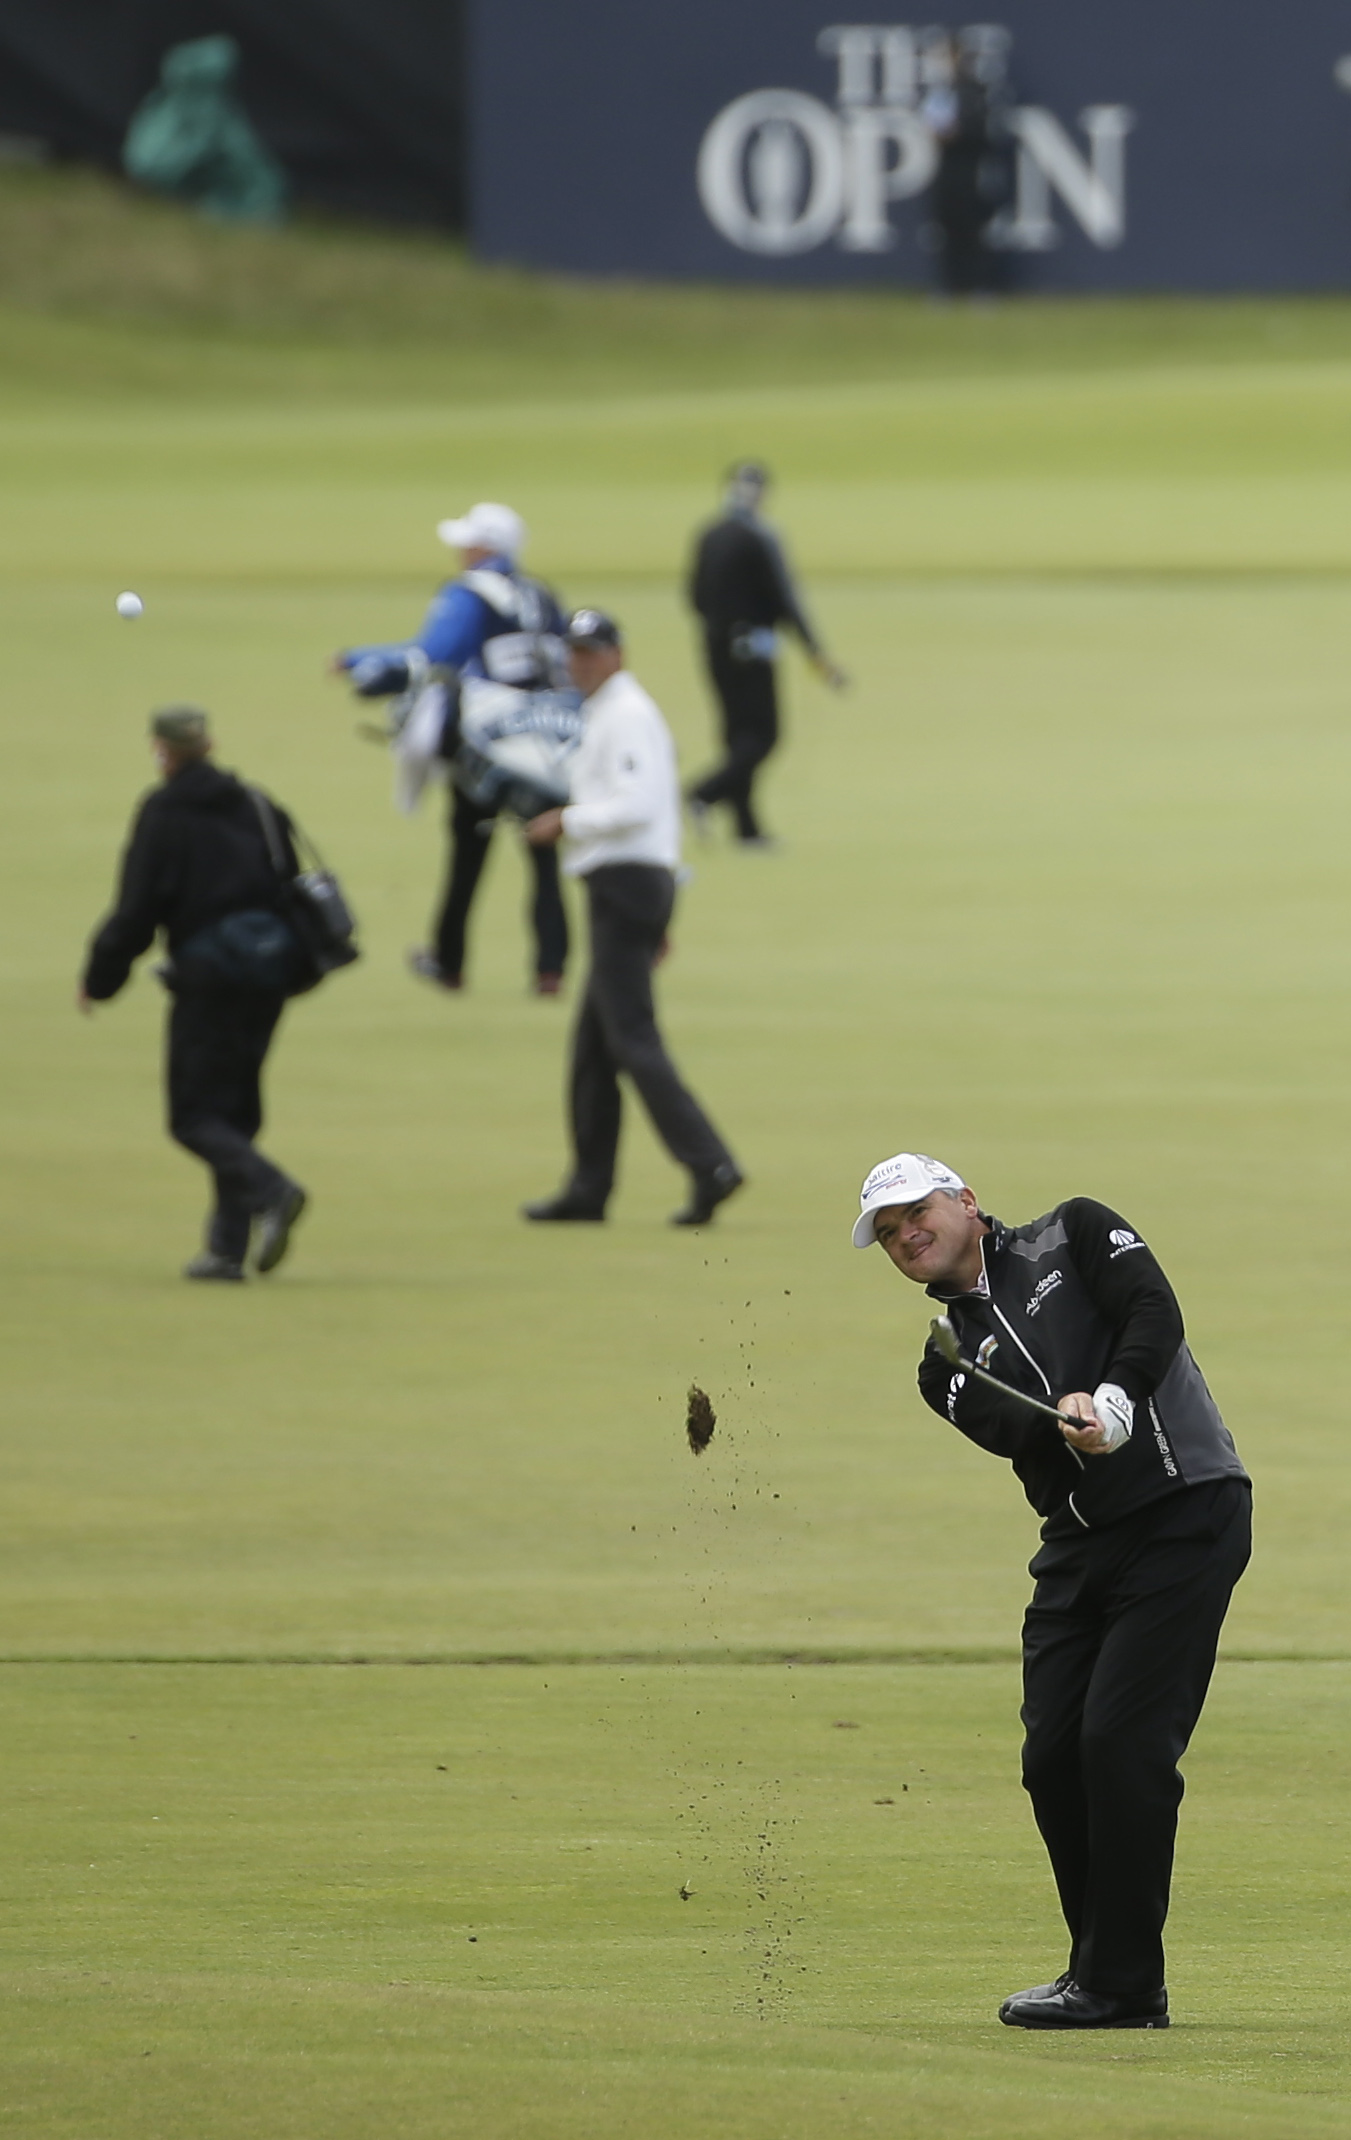 Scotland Paul Lawrie plays a shot on the 18th hole during the first round of the British Open Golf Championship at the Old Course, St. Andrews, Scotland, Thursday, July 16, 2015. (AP Photo/David J. Phillip)